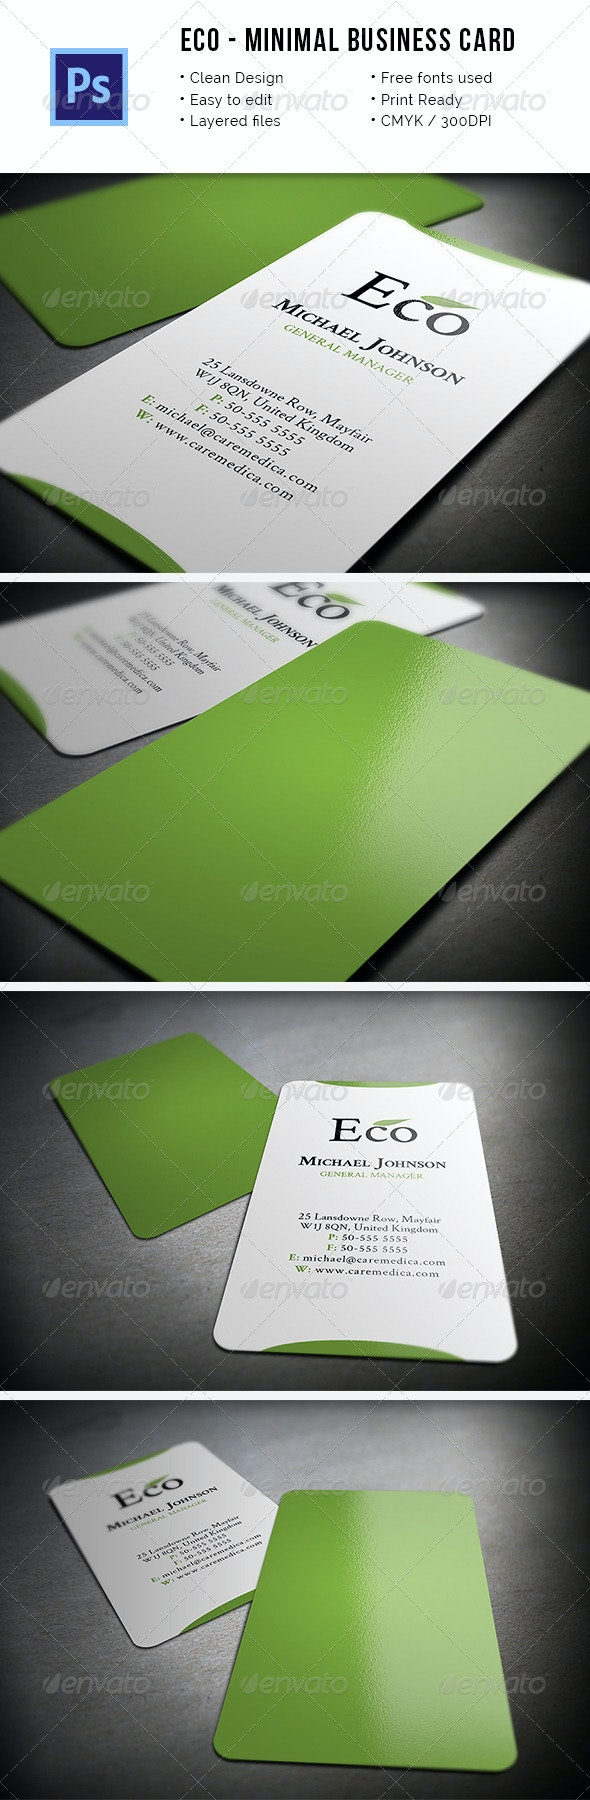 Eco - Minimal Business Card - Industry Specific Business Cards